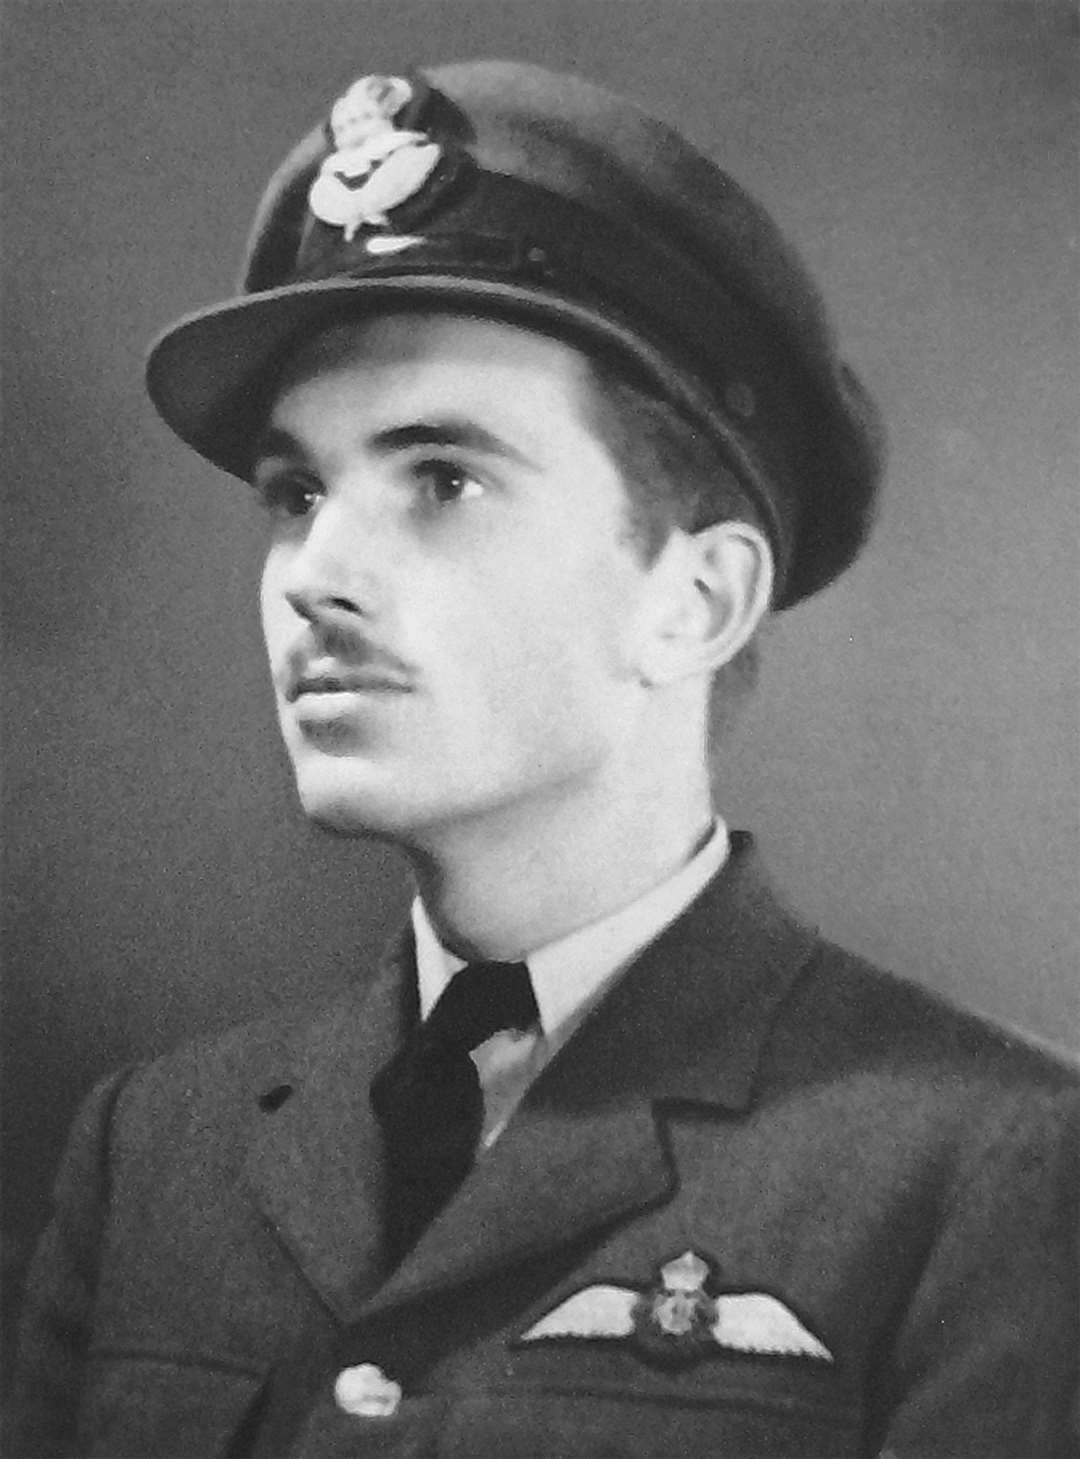 Pilot Officer John Magee